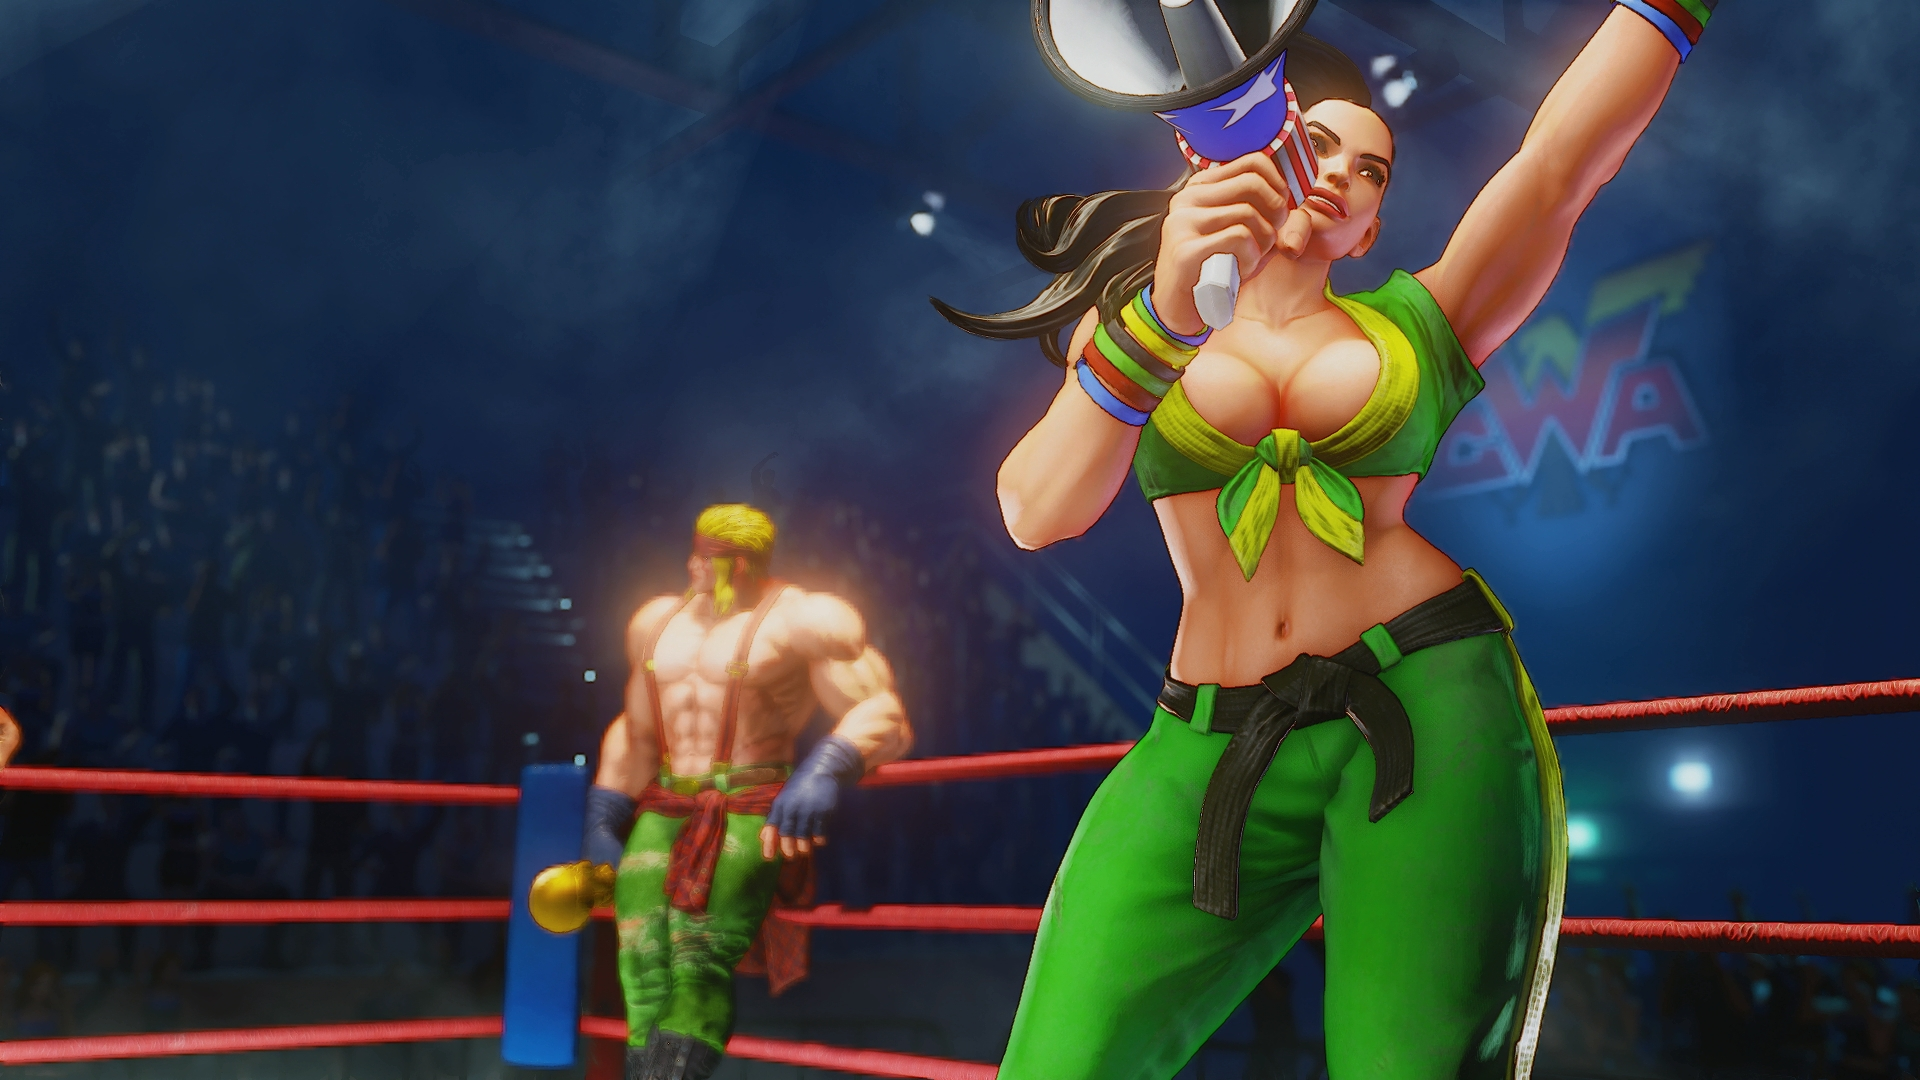 Street-Fighter-V-a-shadow-falls-screenshot-001